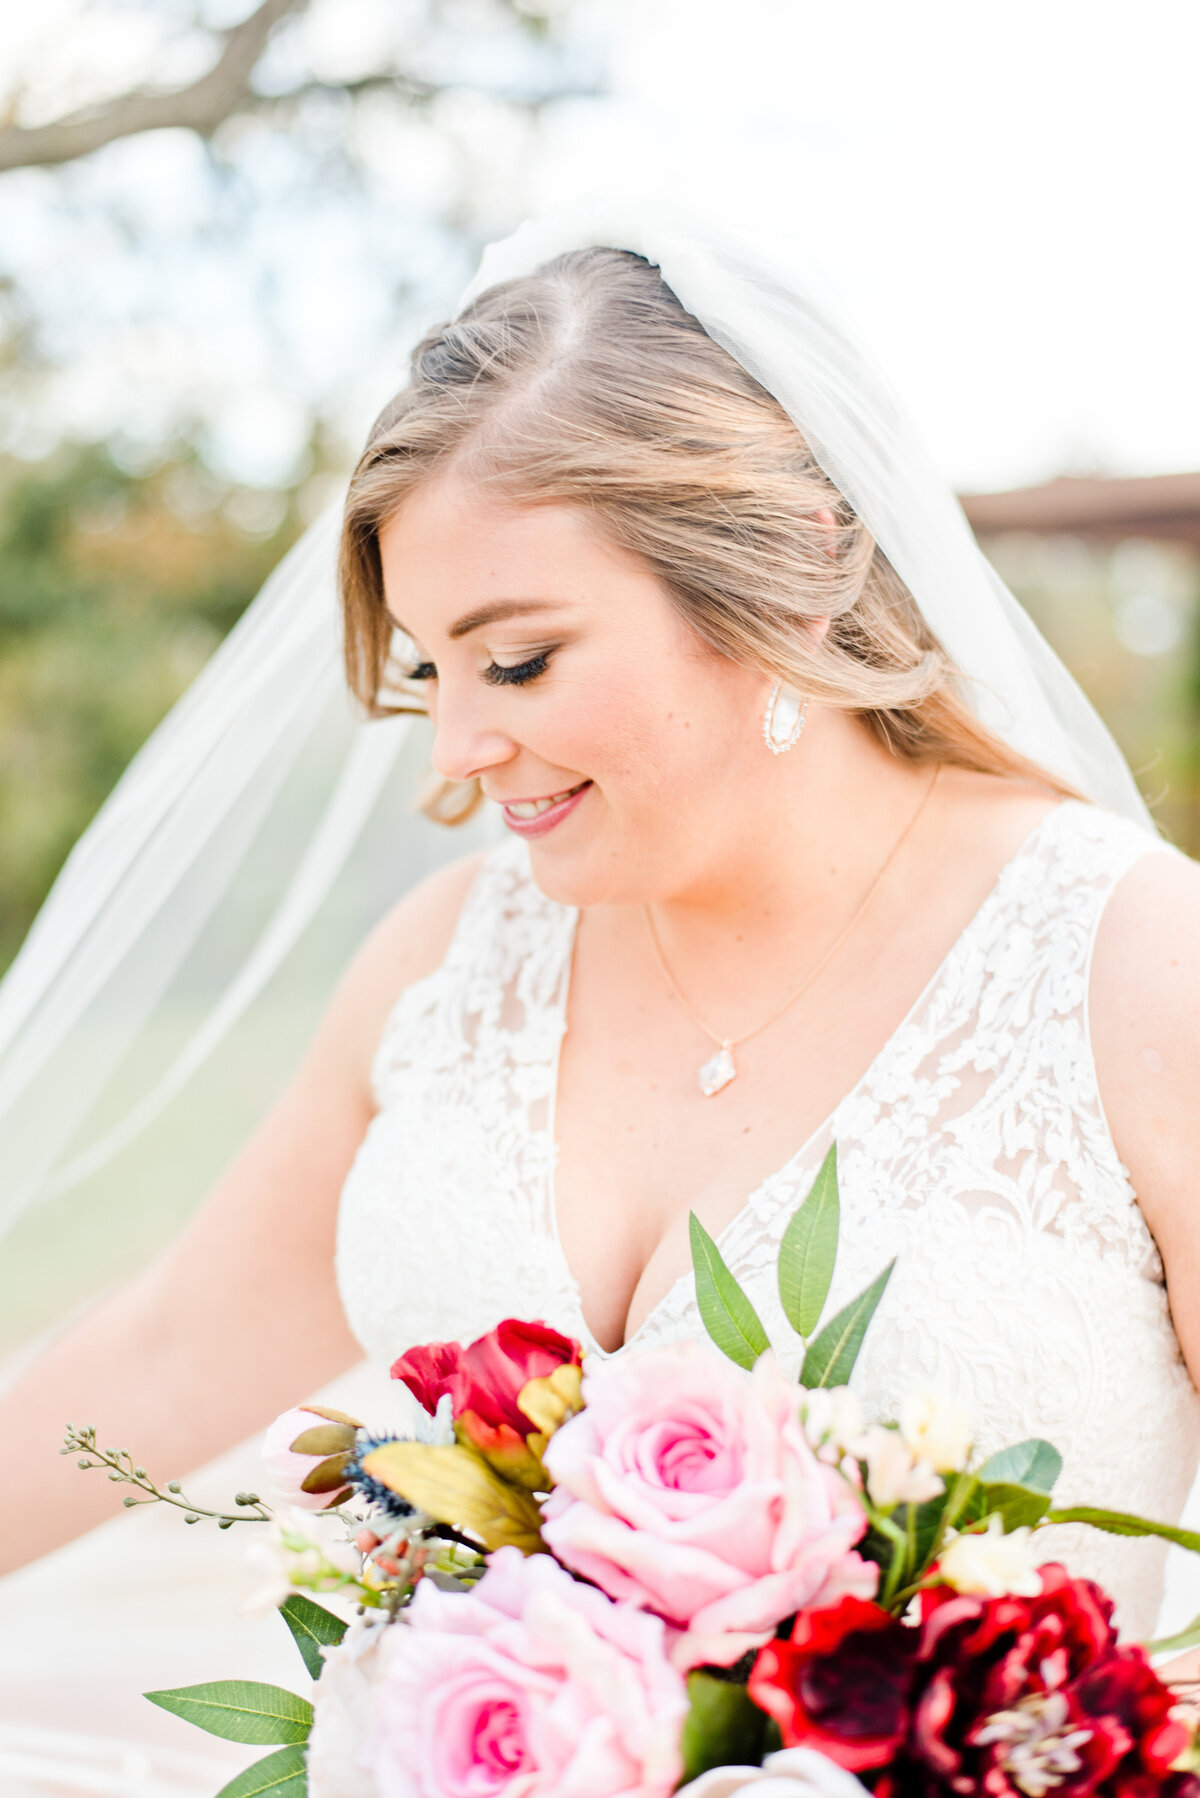 Close up photo of bride with colorful bouquet